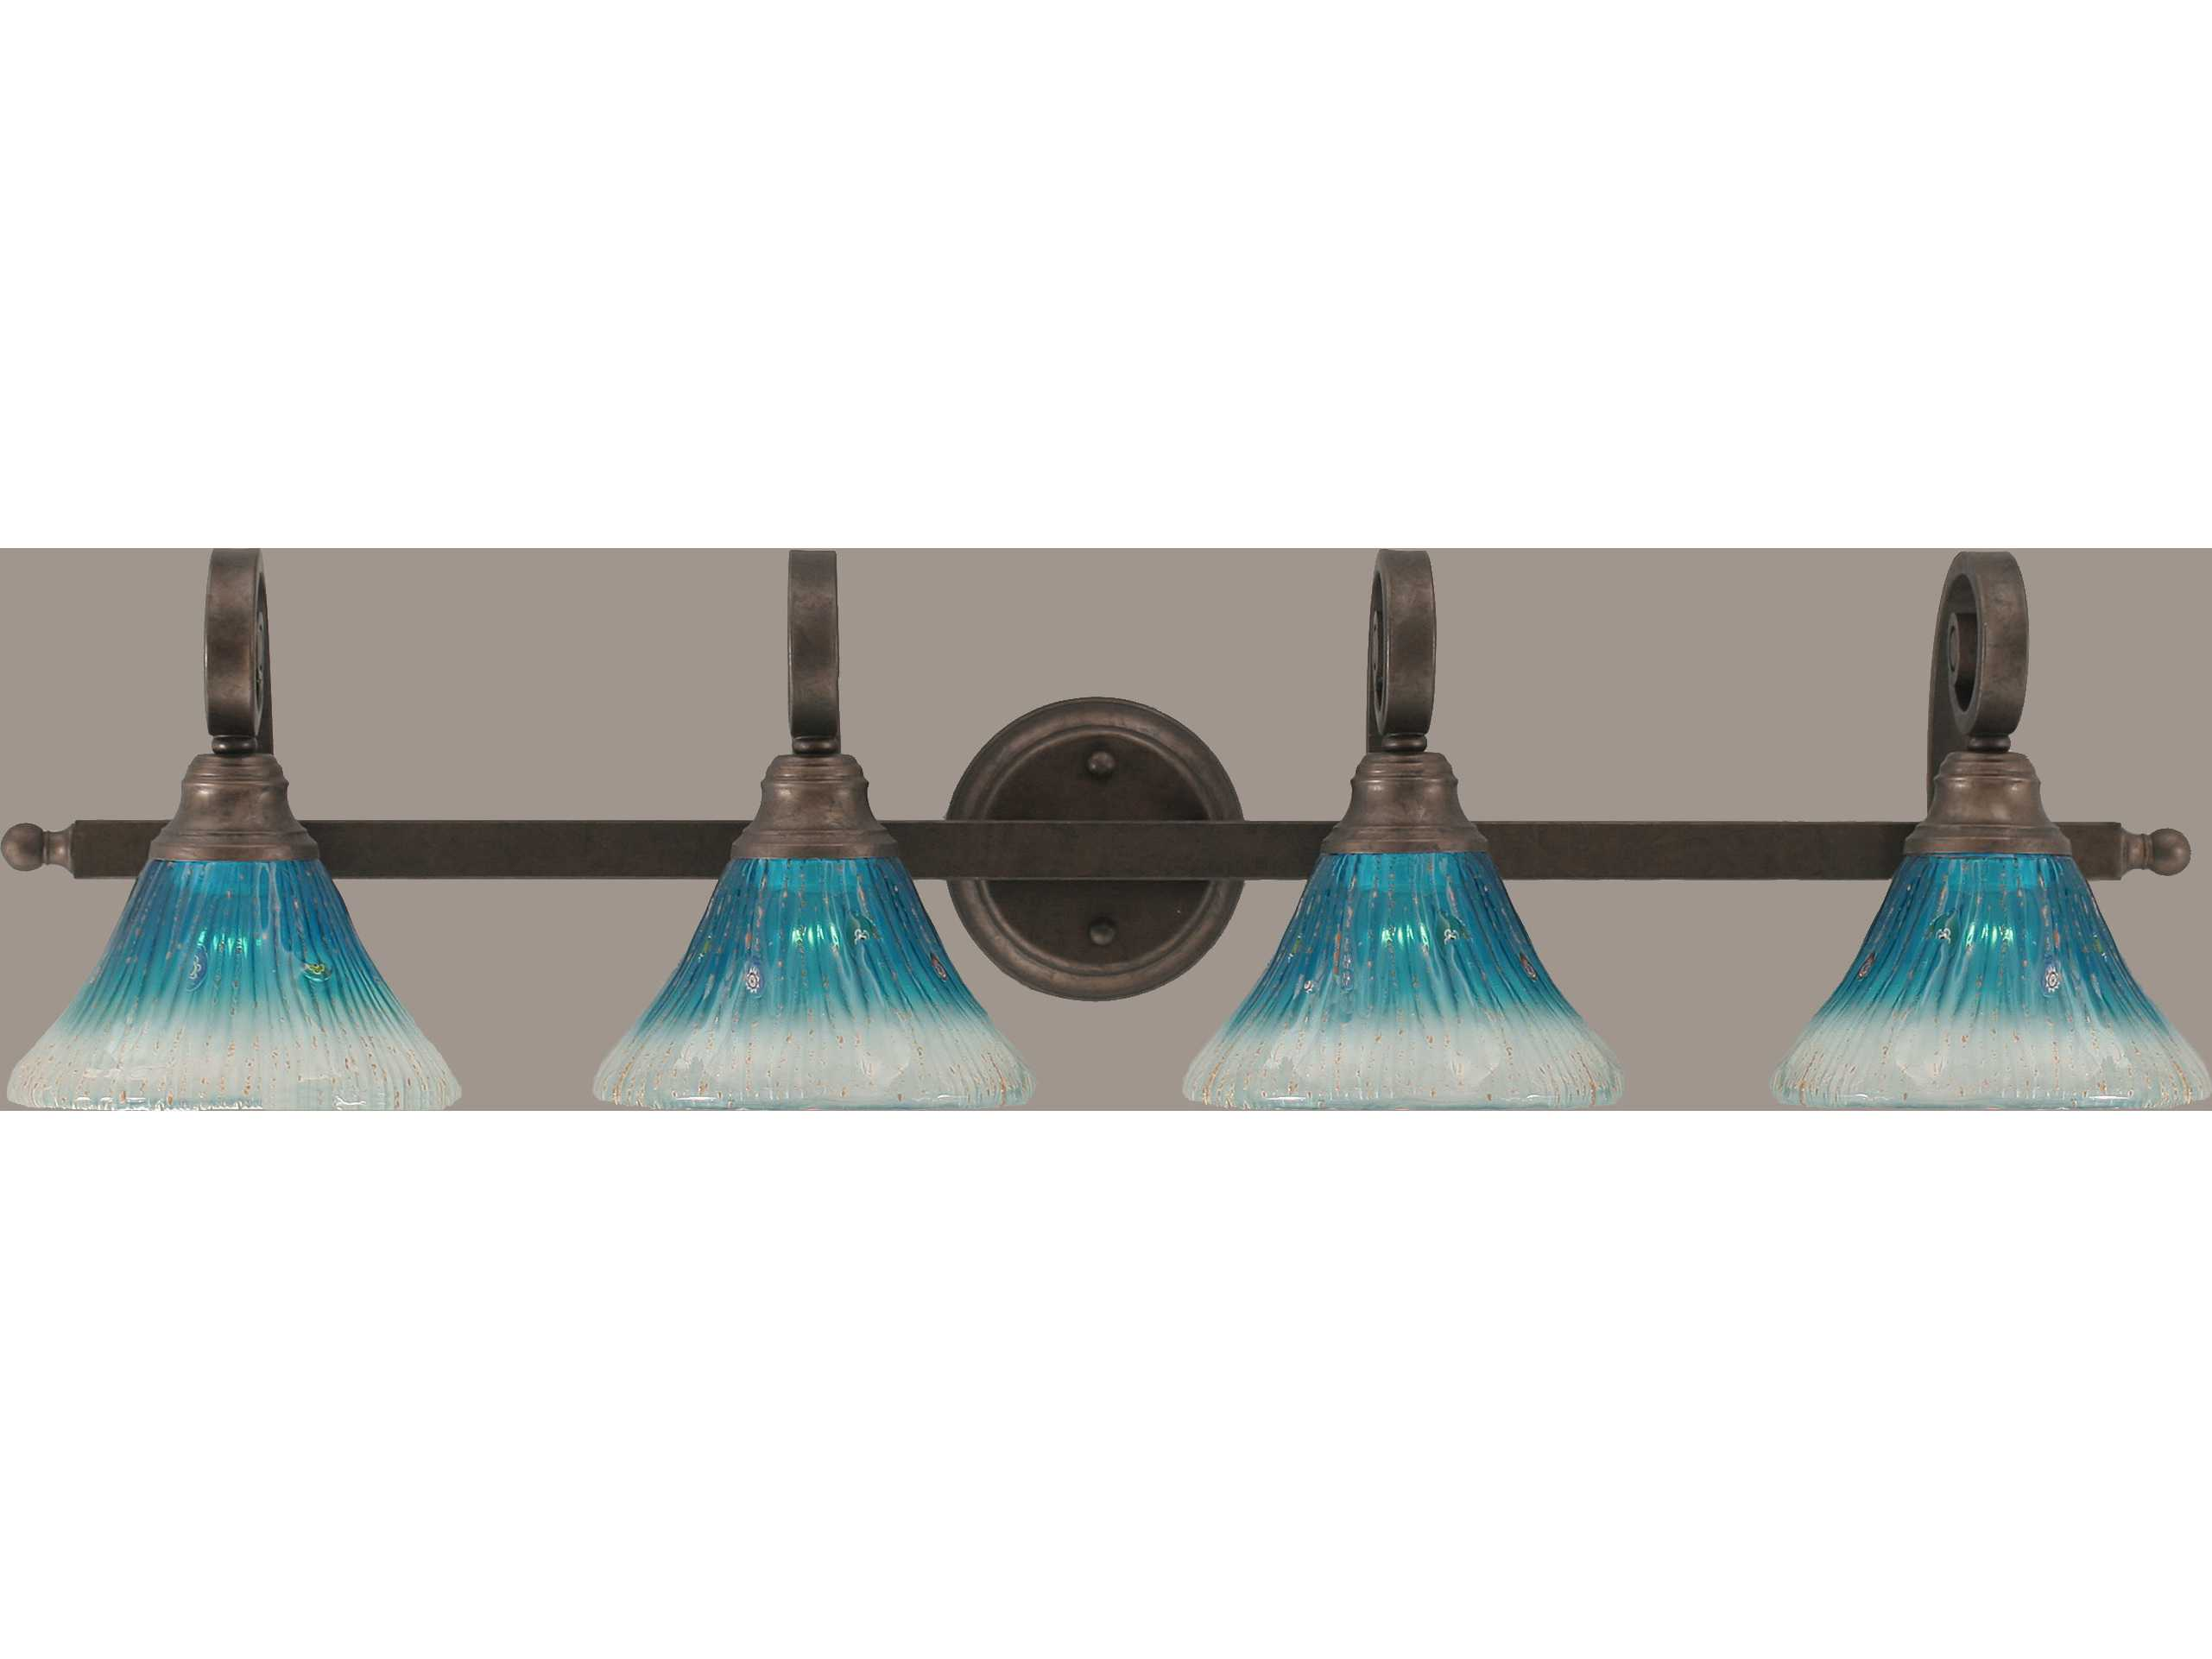 Vanity Lights Cyber Monday : Toltec Lighting Curl Bronze & Teal Crystal Glass Four-Light Vanity Light TOL154BRZ458